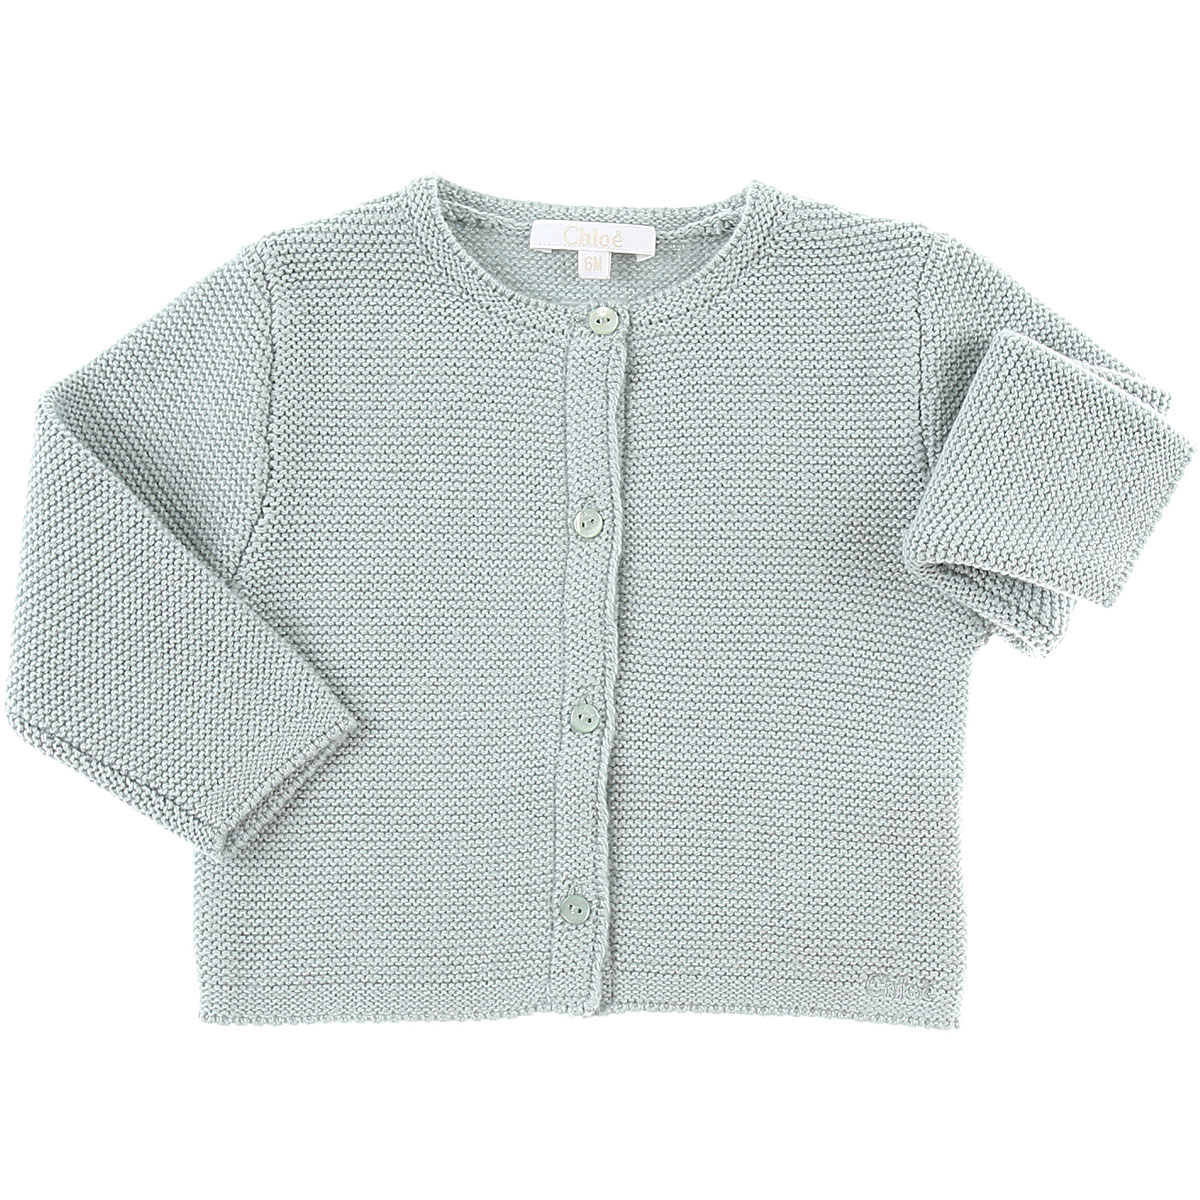 Image of Chloe Baby Sweaters for Girls, Green Water, Cotton, 2017, 12M 18M 2Y 3Y 6M 9M